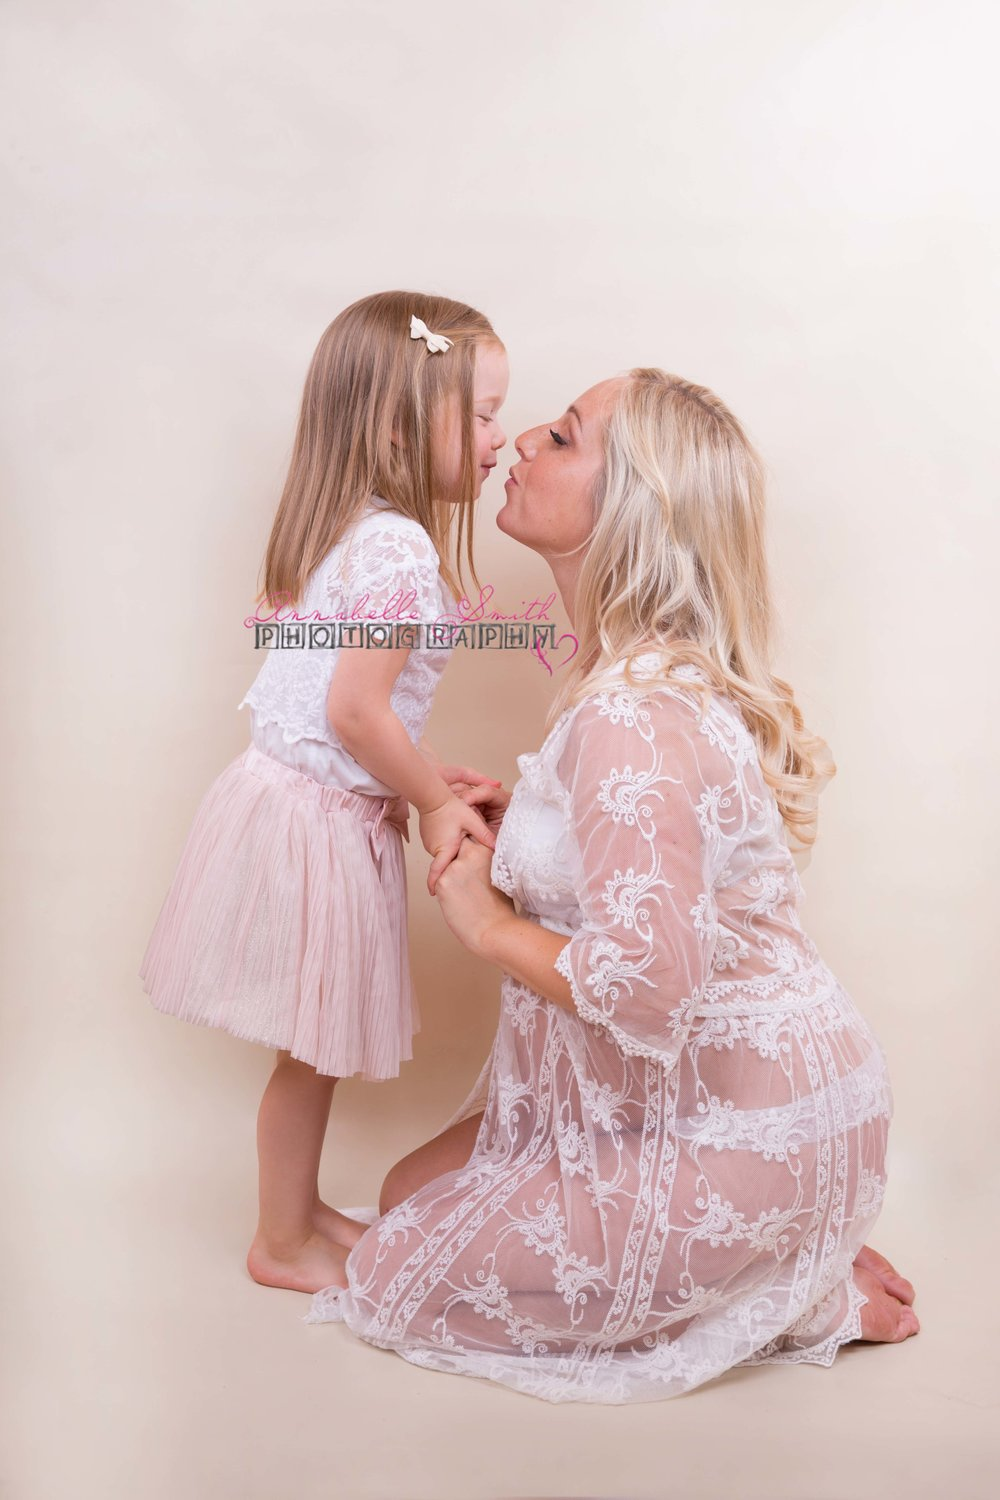 Maternity photo shoot surrey walton on thames.jpg